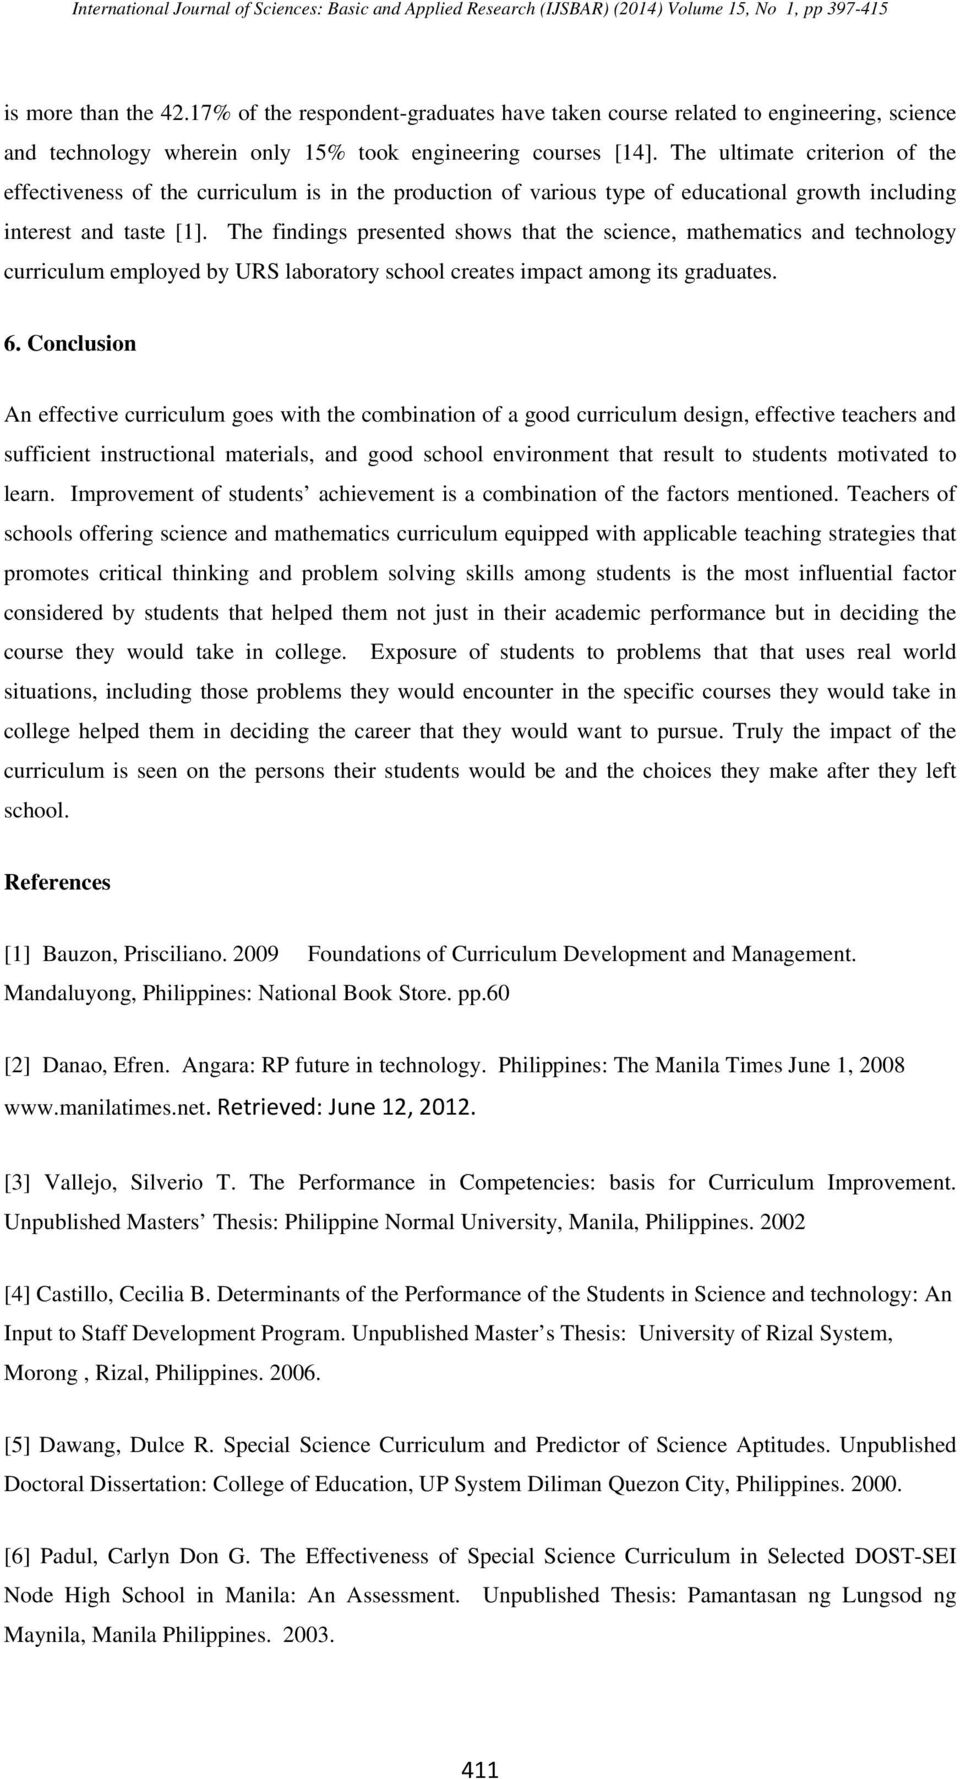 thesis about instructional materials in mathematics